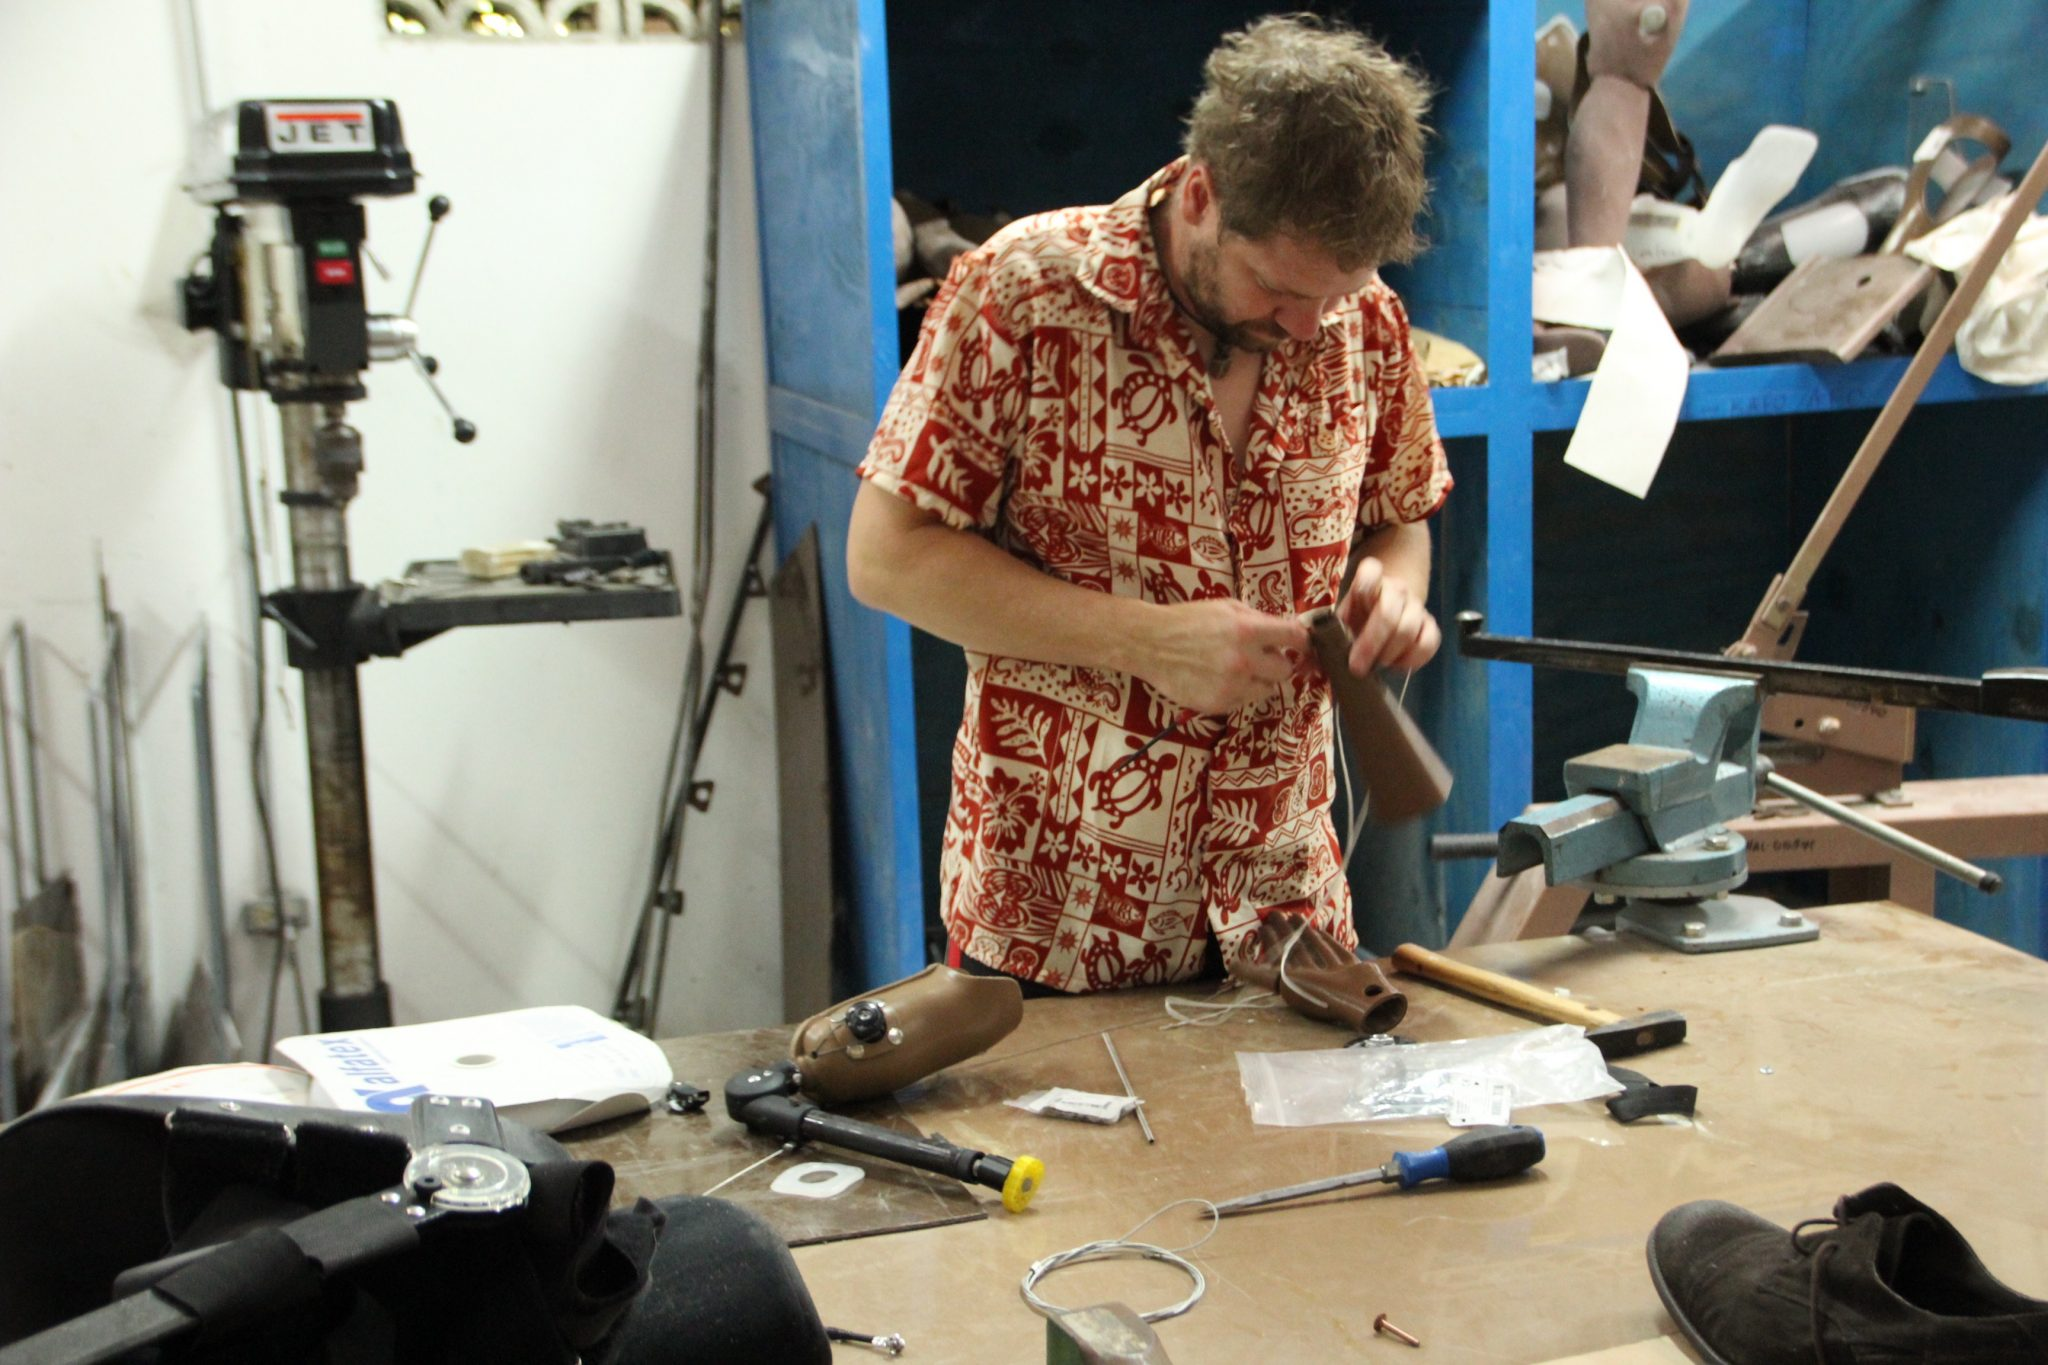 Jeff Erenstone, Founder of Create O&P, constructing 3D printed prosthetics. Photo via Create O&P.